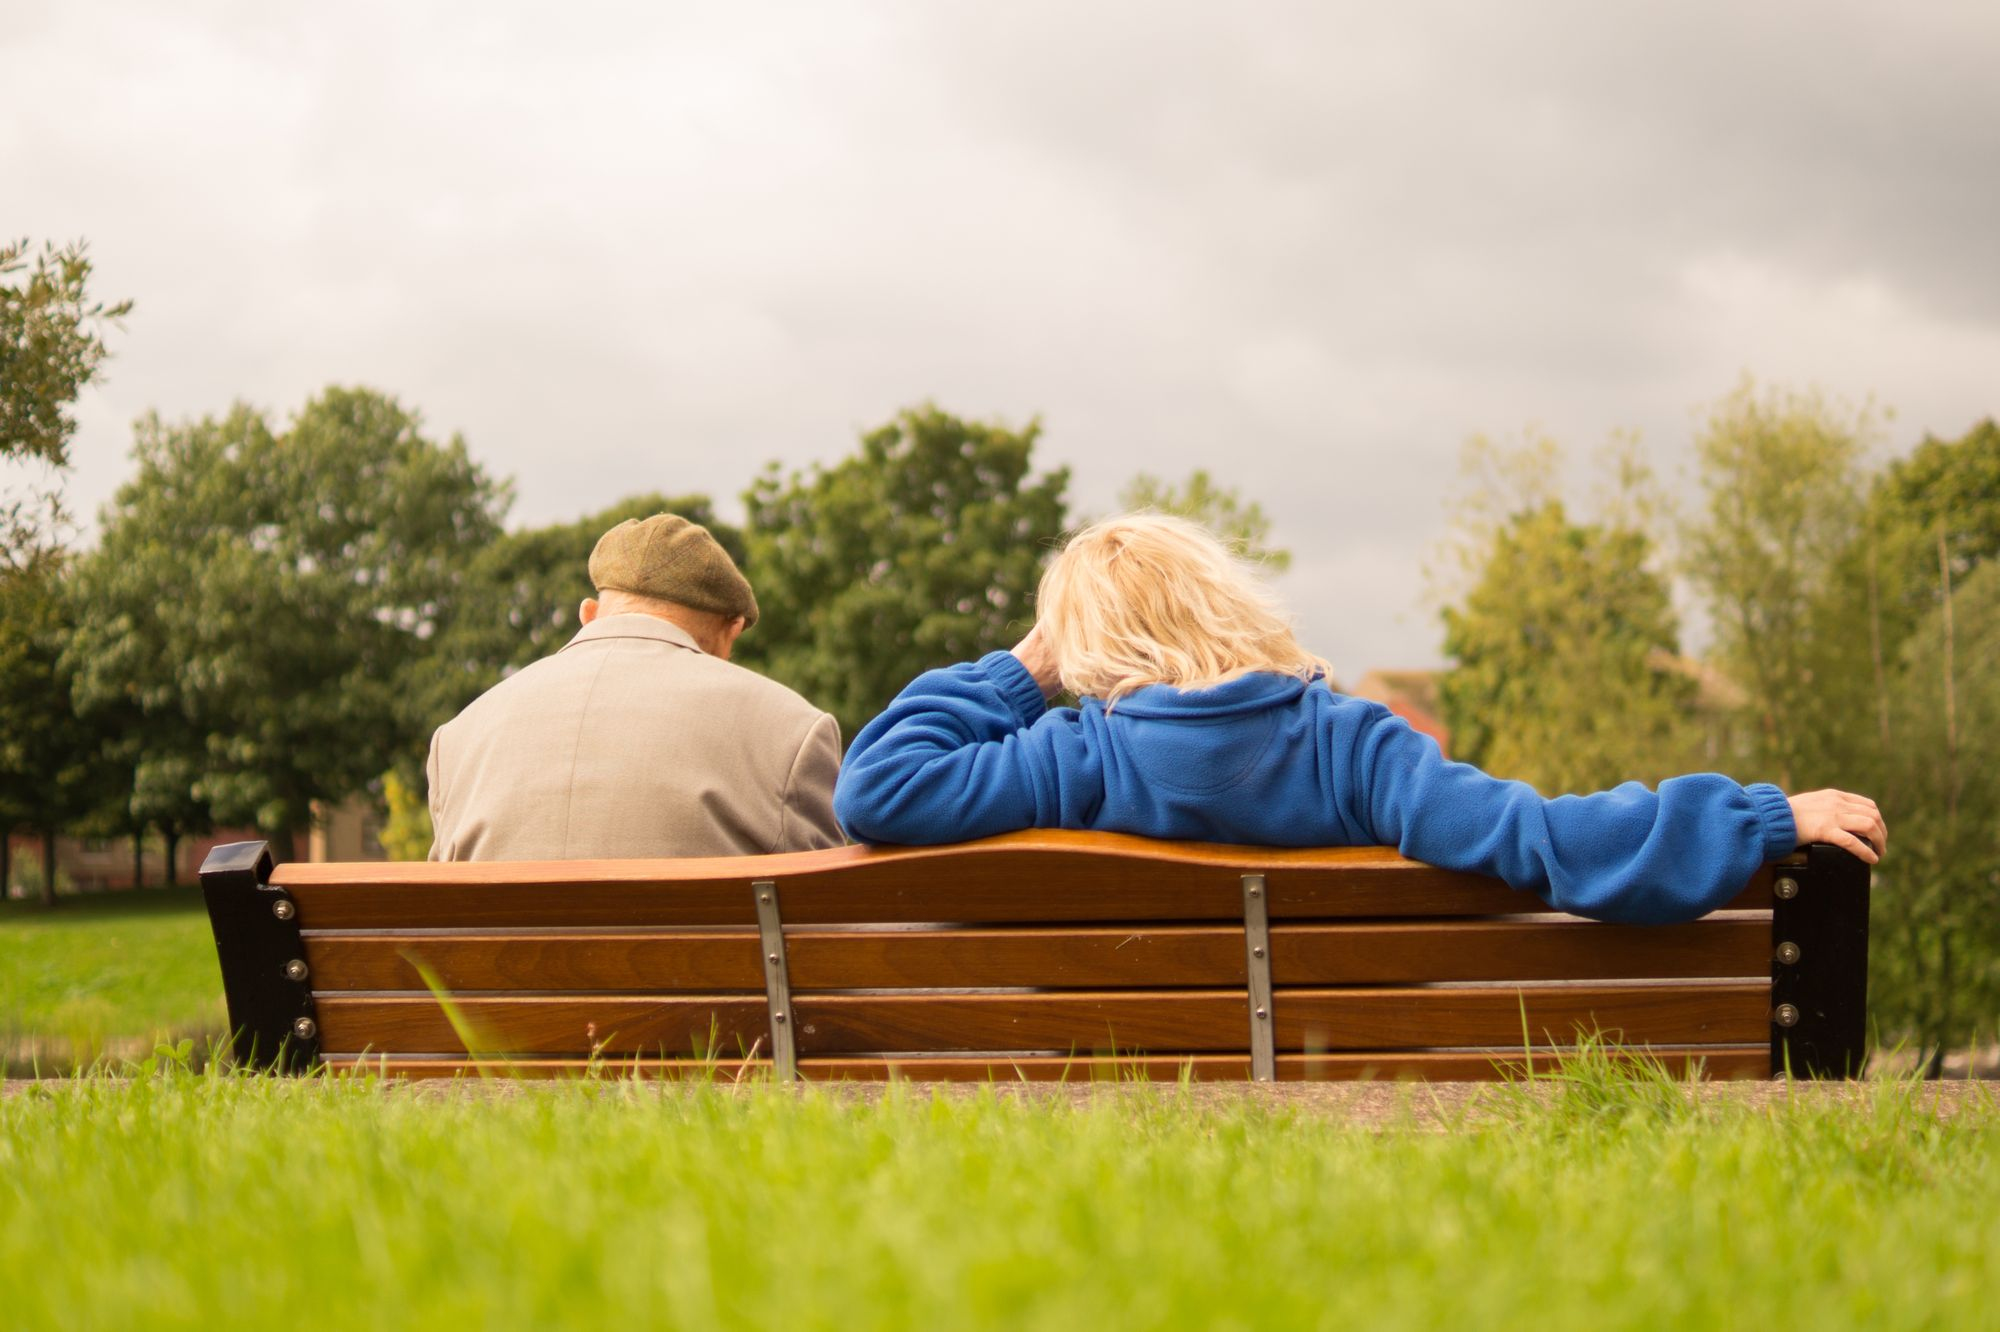 Five practical tips to help carers look after themselves